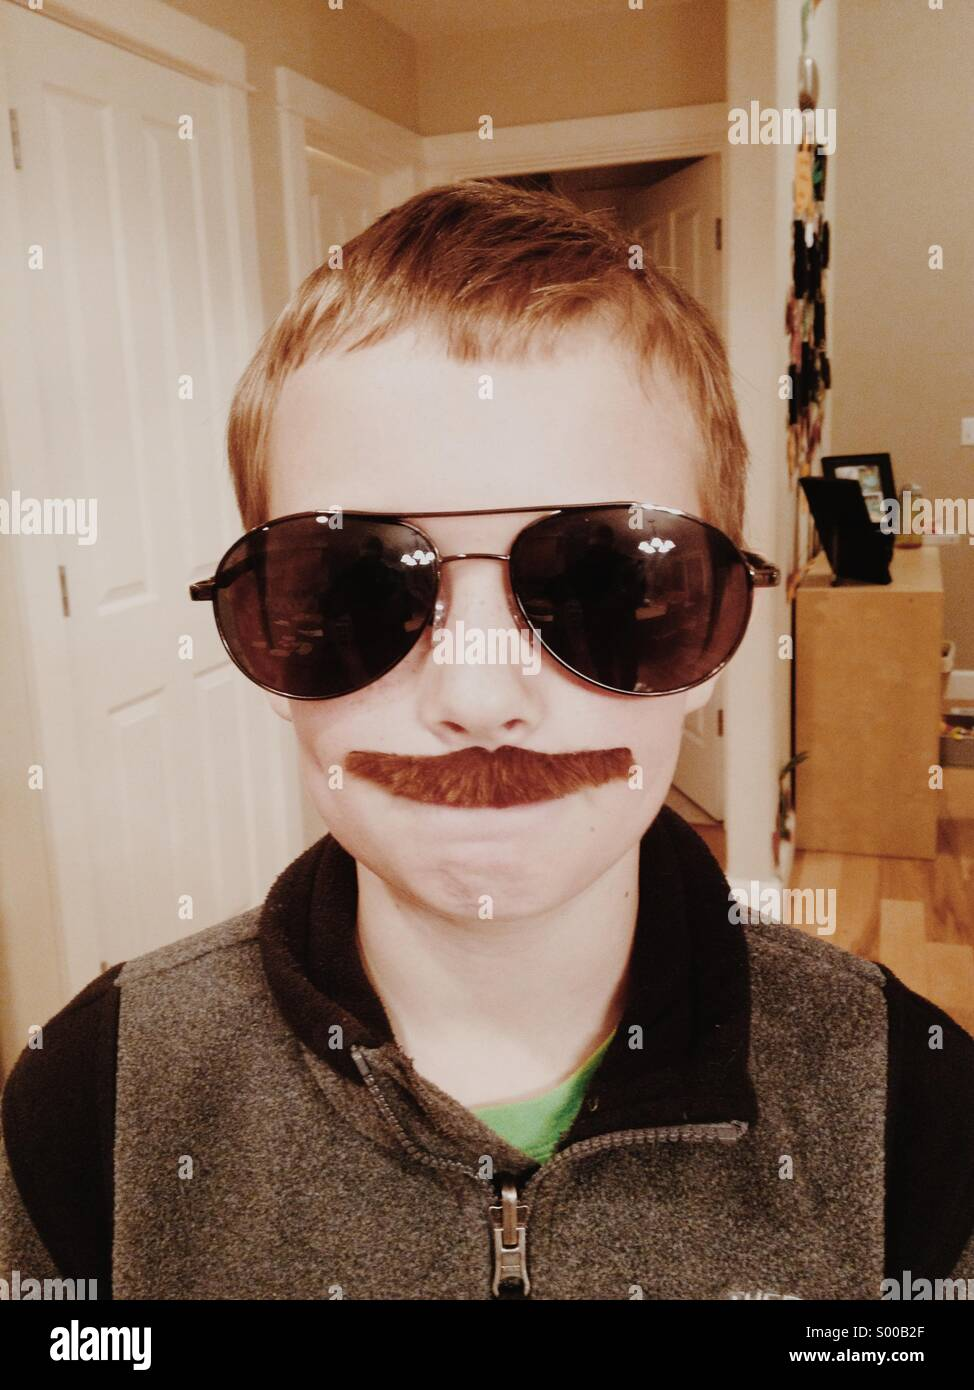 Kid with fake mustache and glasses Stock Photo